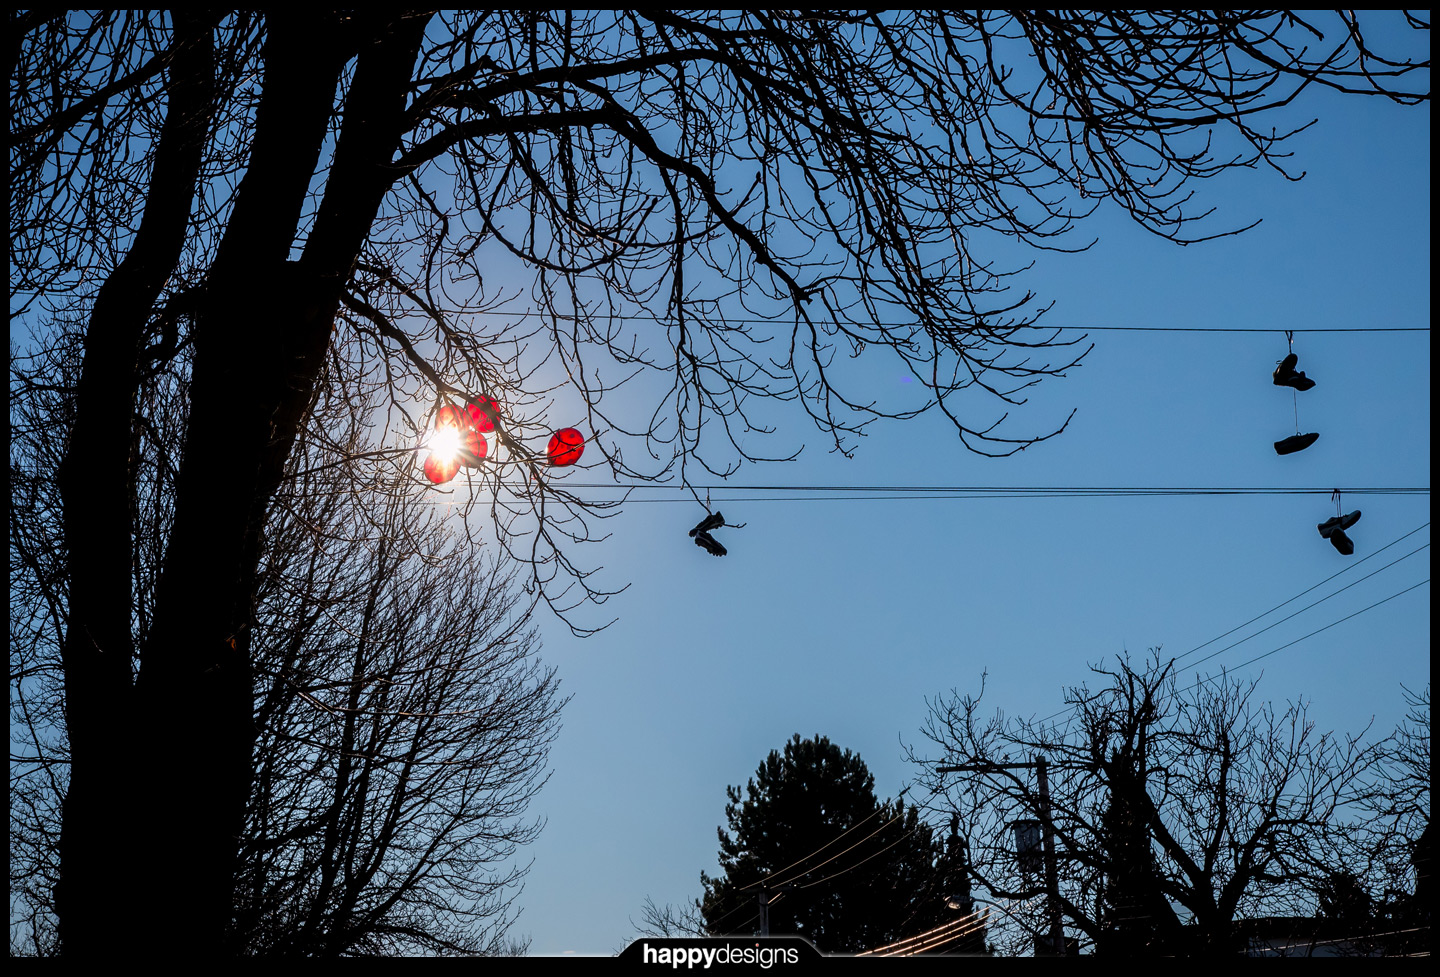 20150106 - balloons in a tree-0002